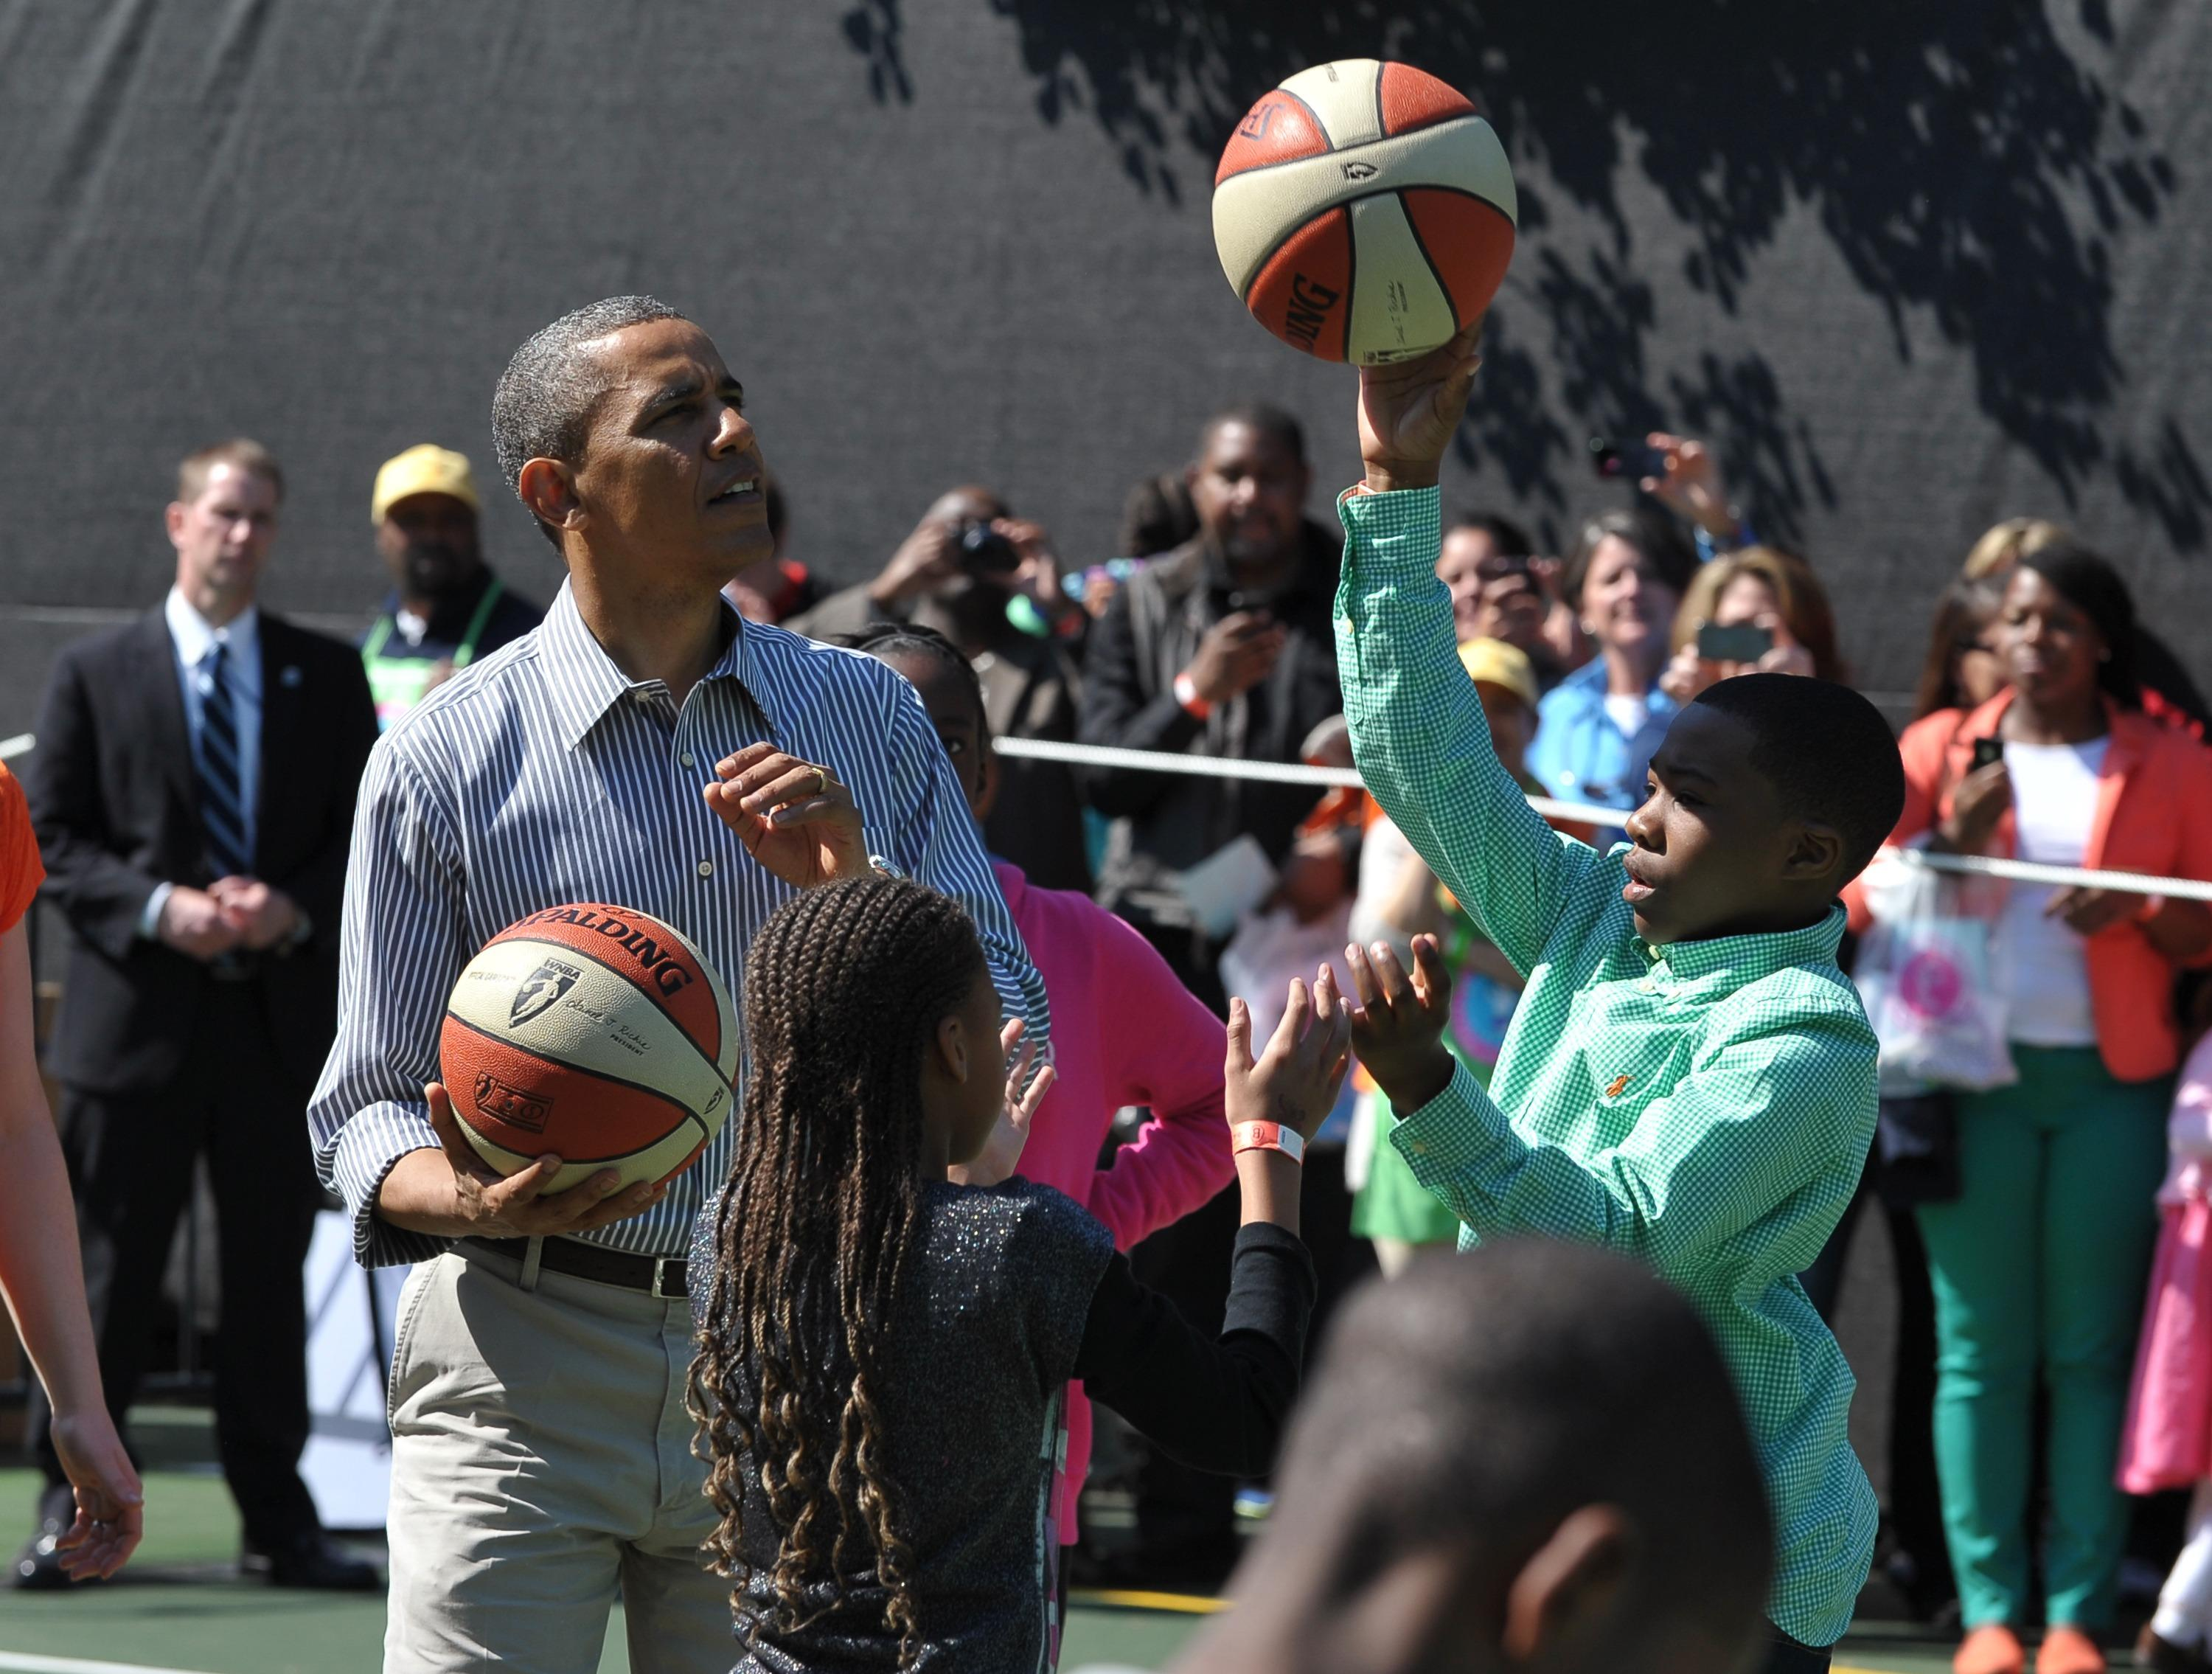 Barack Obama plays basketball with children on Eater